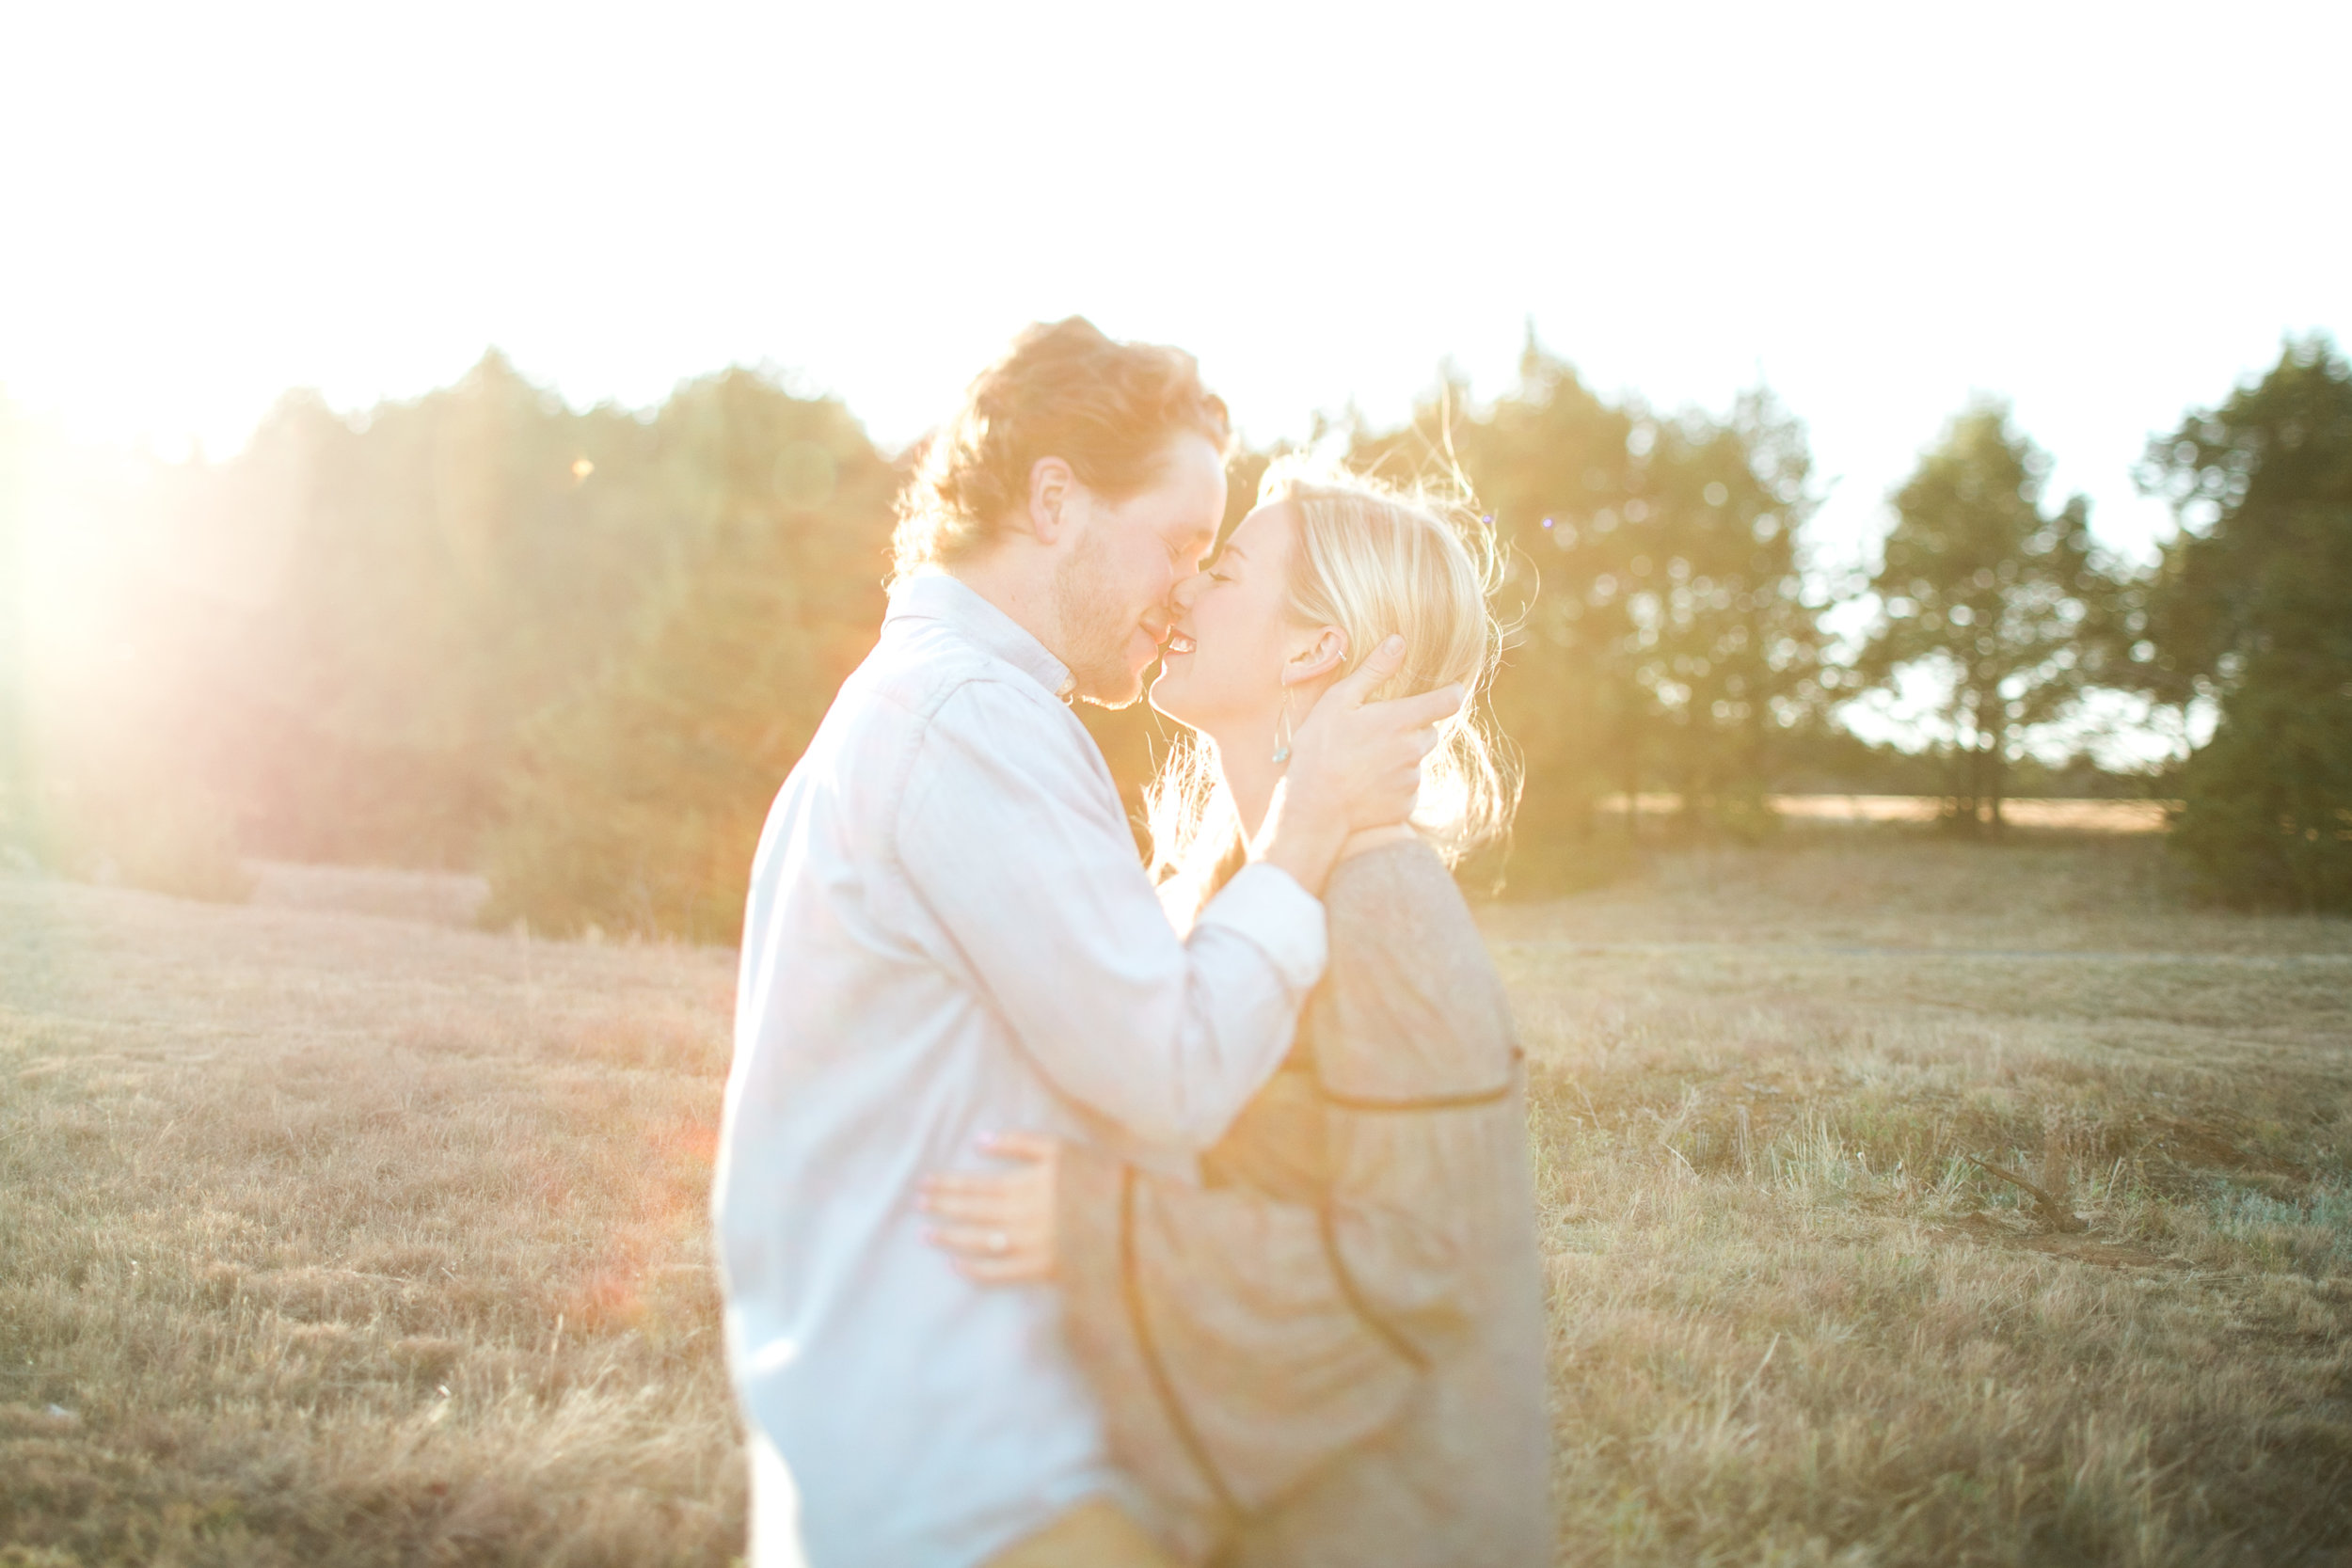 m-p-engagement-carsyn-abrams-photography-97.jpg